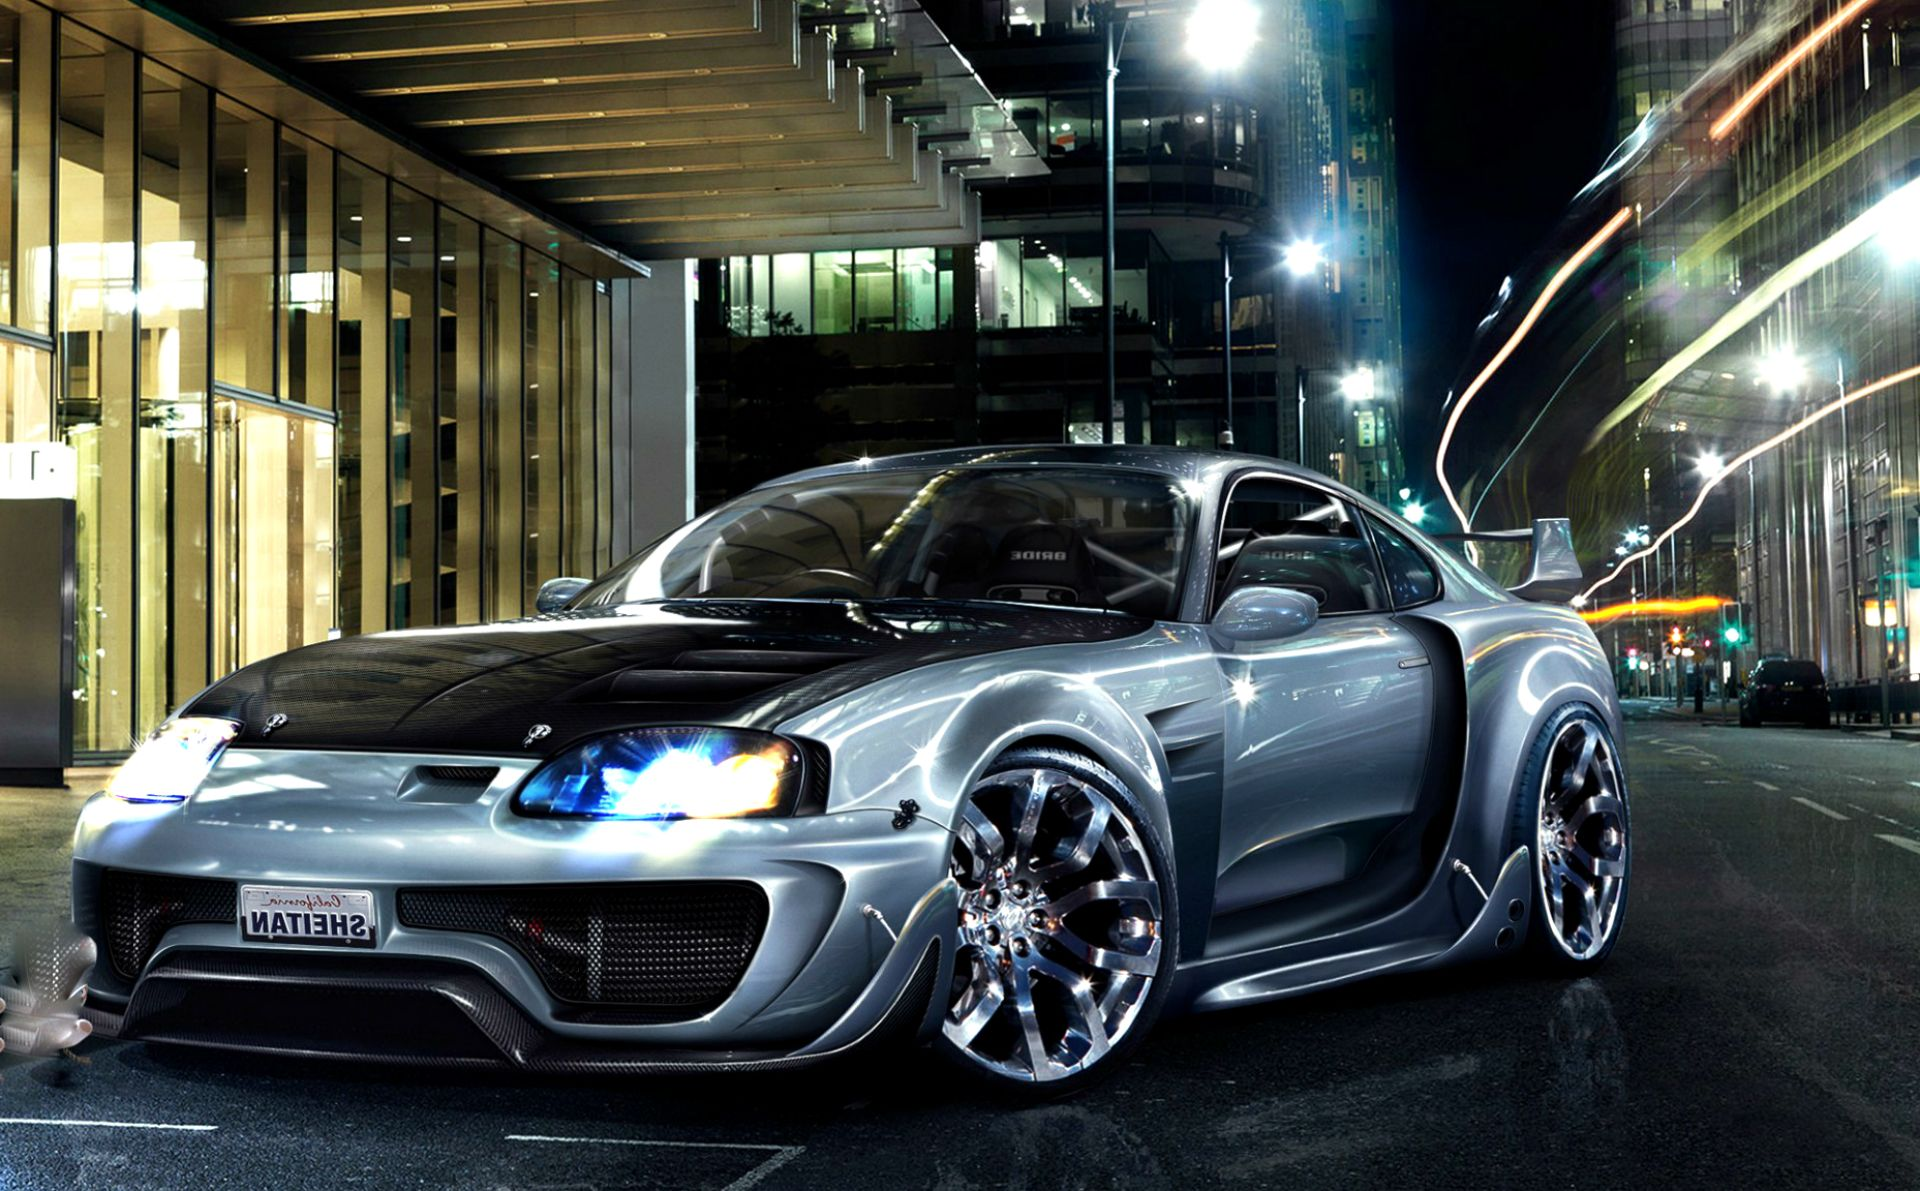 Download 47 Amazing Sports Wallpapers Hd High Defination: Download Super Sports Car Wallpapers Collection HD